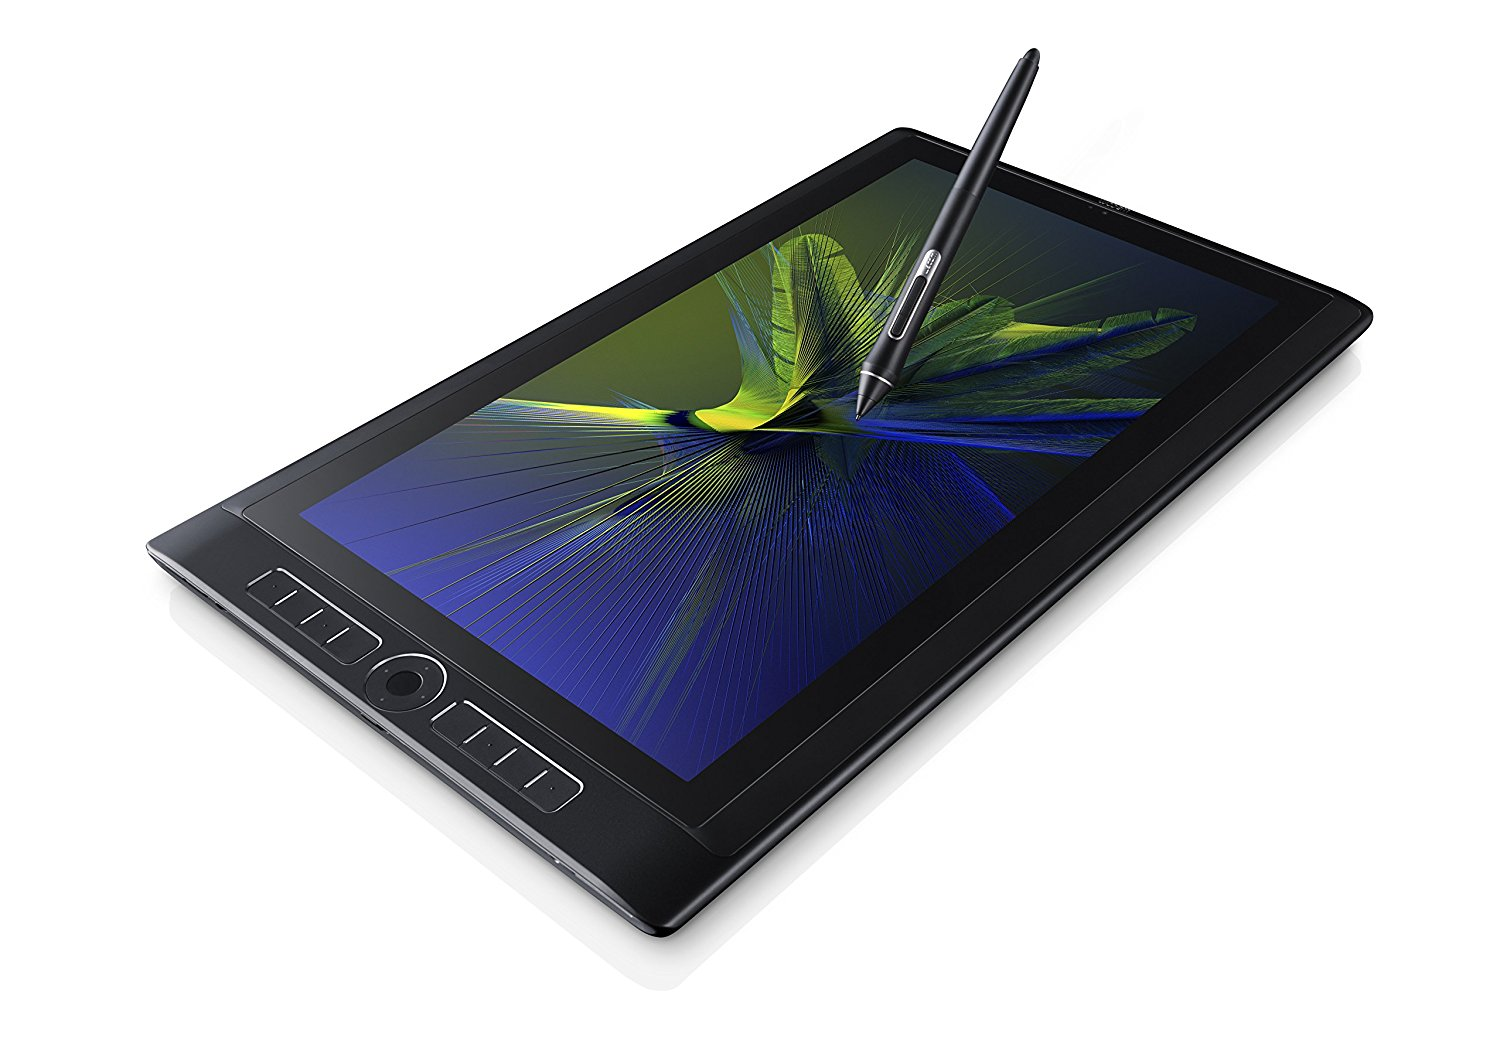 Tablette graphique Wacom MobileStudio Pro 16 - 512 Go